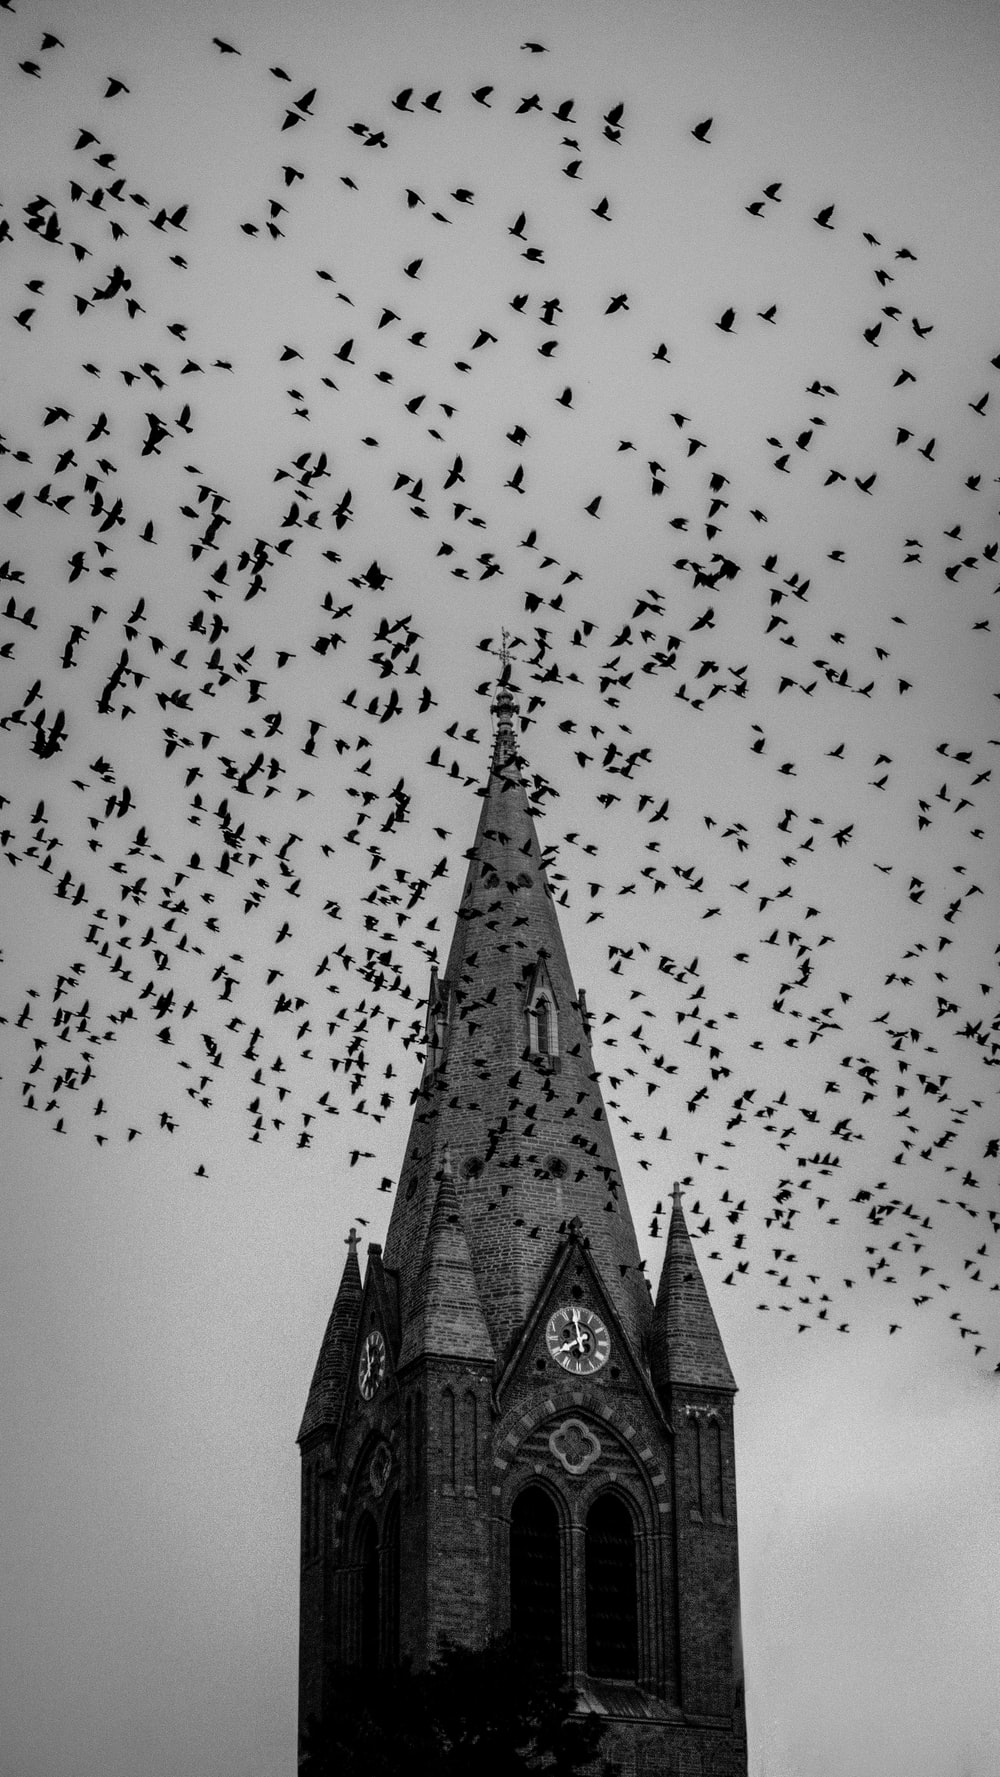 grayscale photo of cathedral under birds